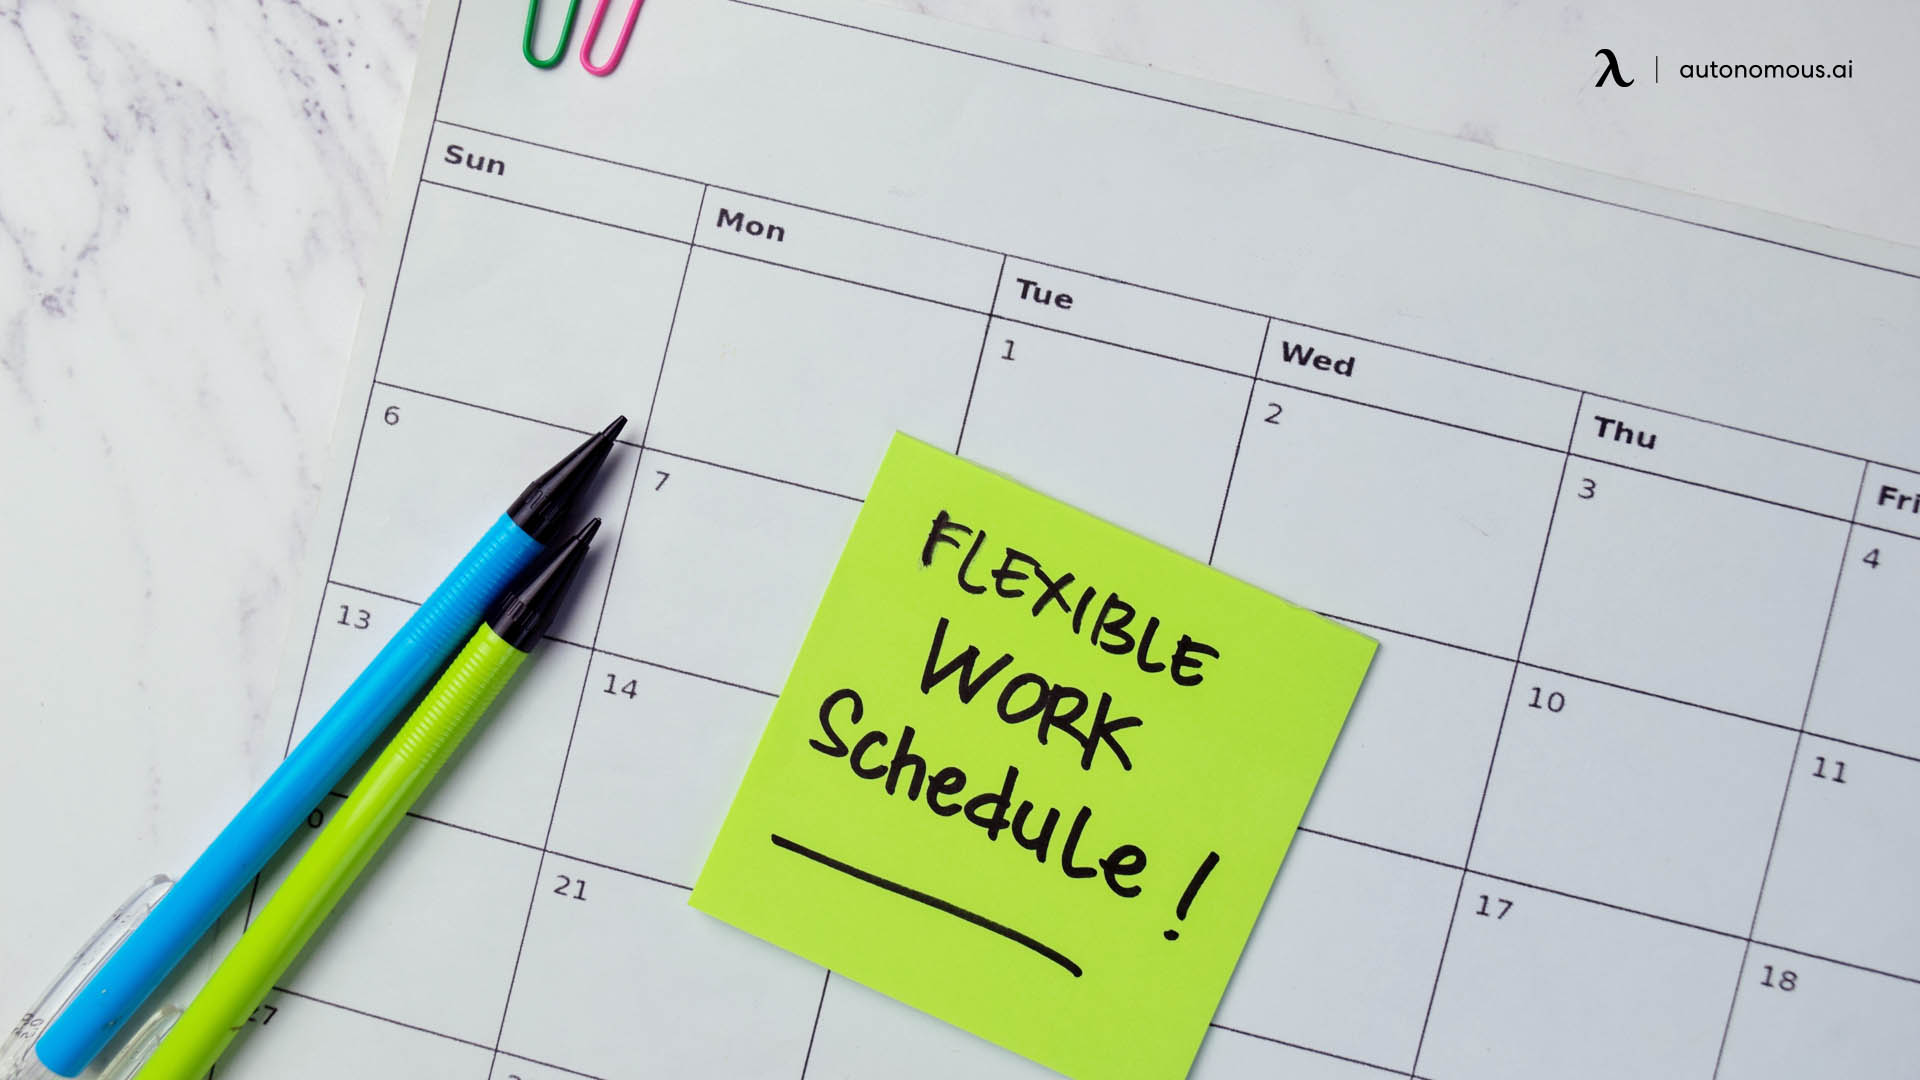 Reasons why people prefer a flexible office instead of a 9-to-5 schedule